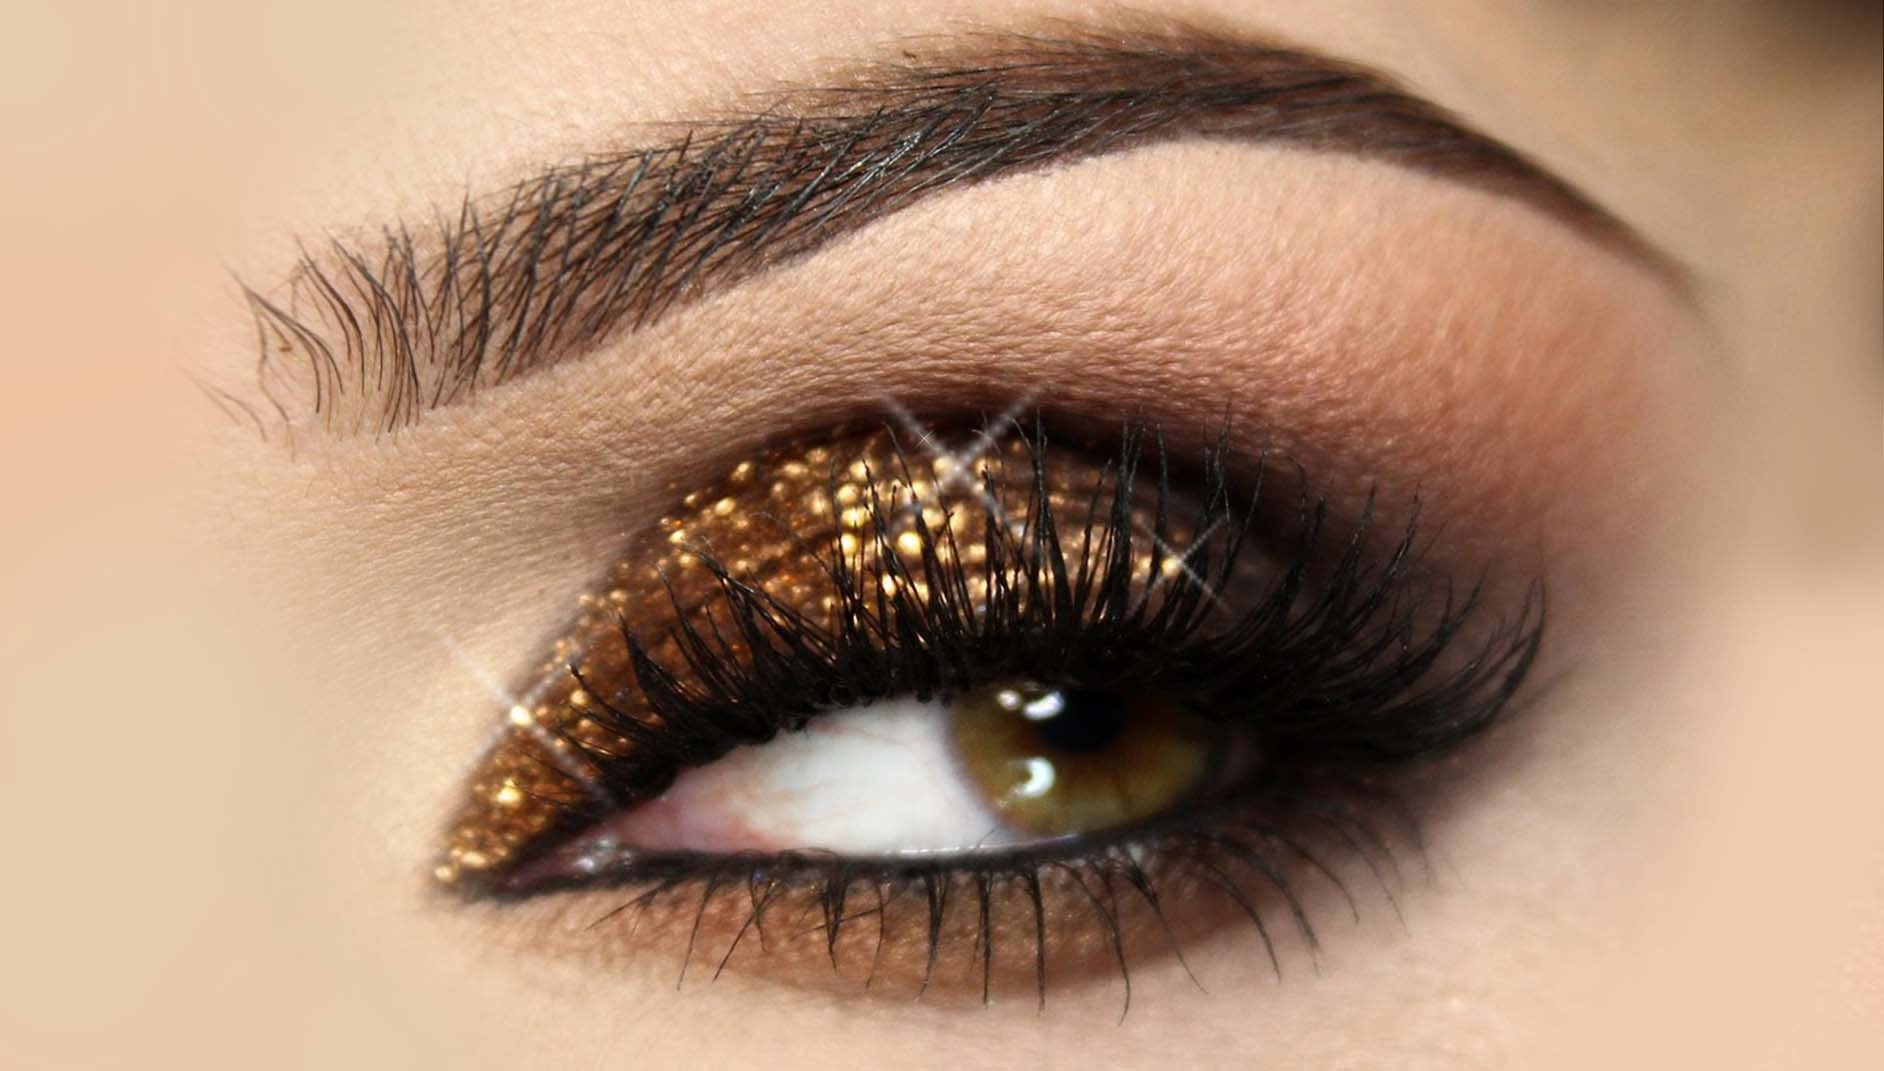 womens eye with gold glitter eyeliner on